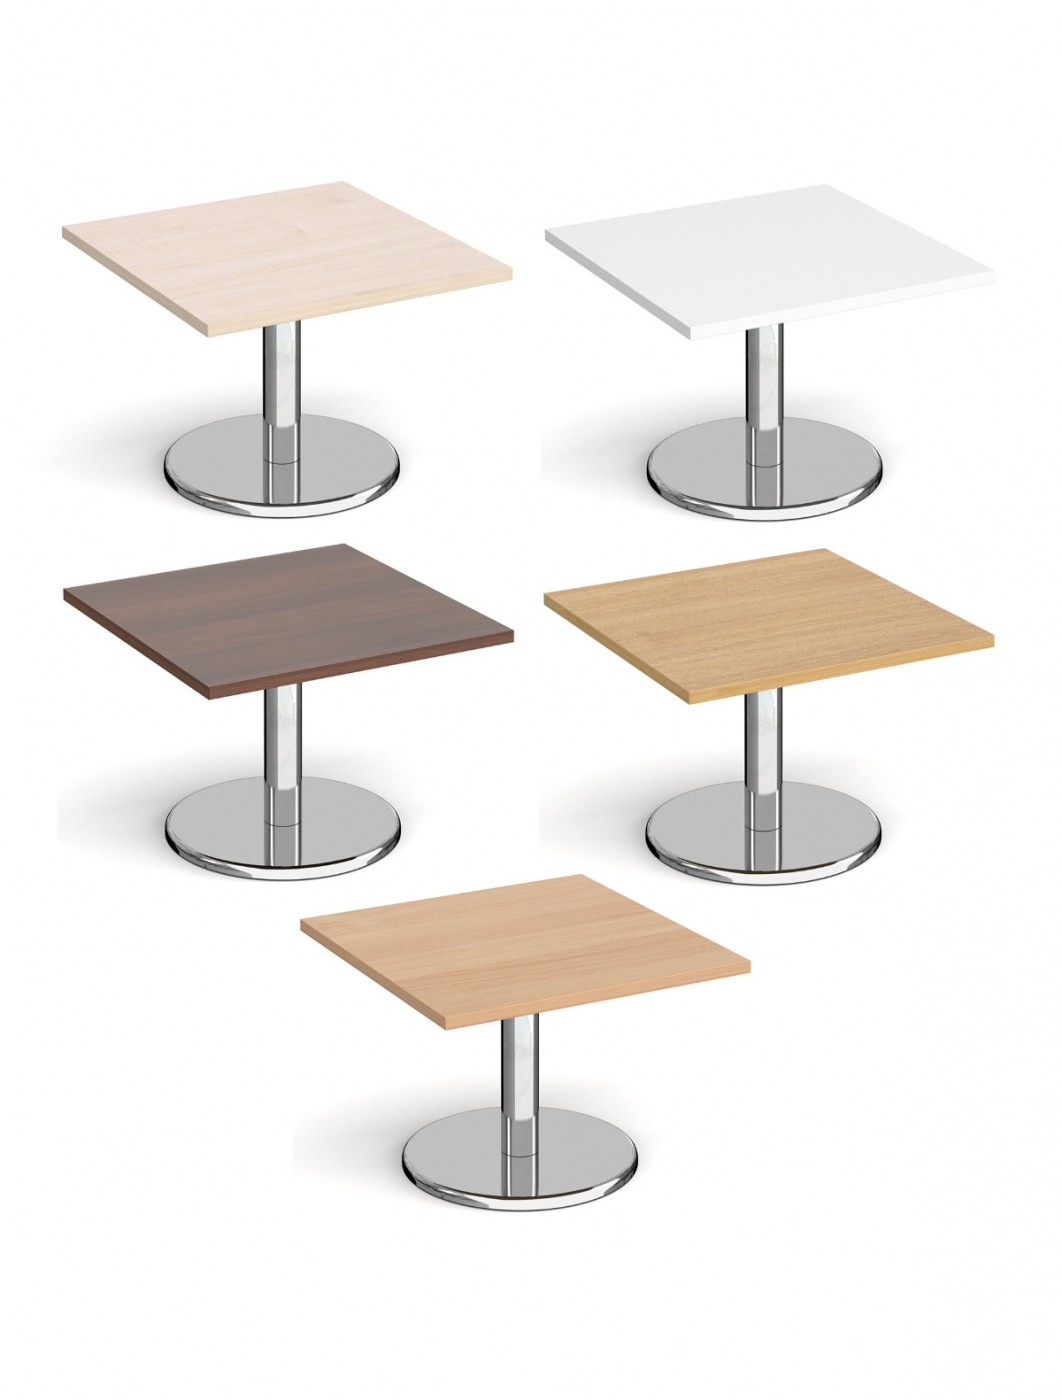 Square Coffee Table Pisa 700mm PCS700 by Dams